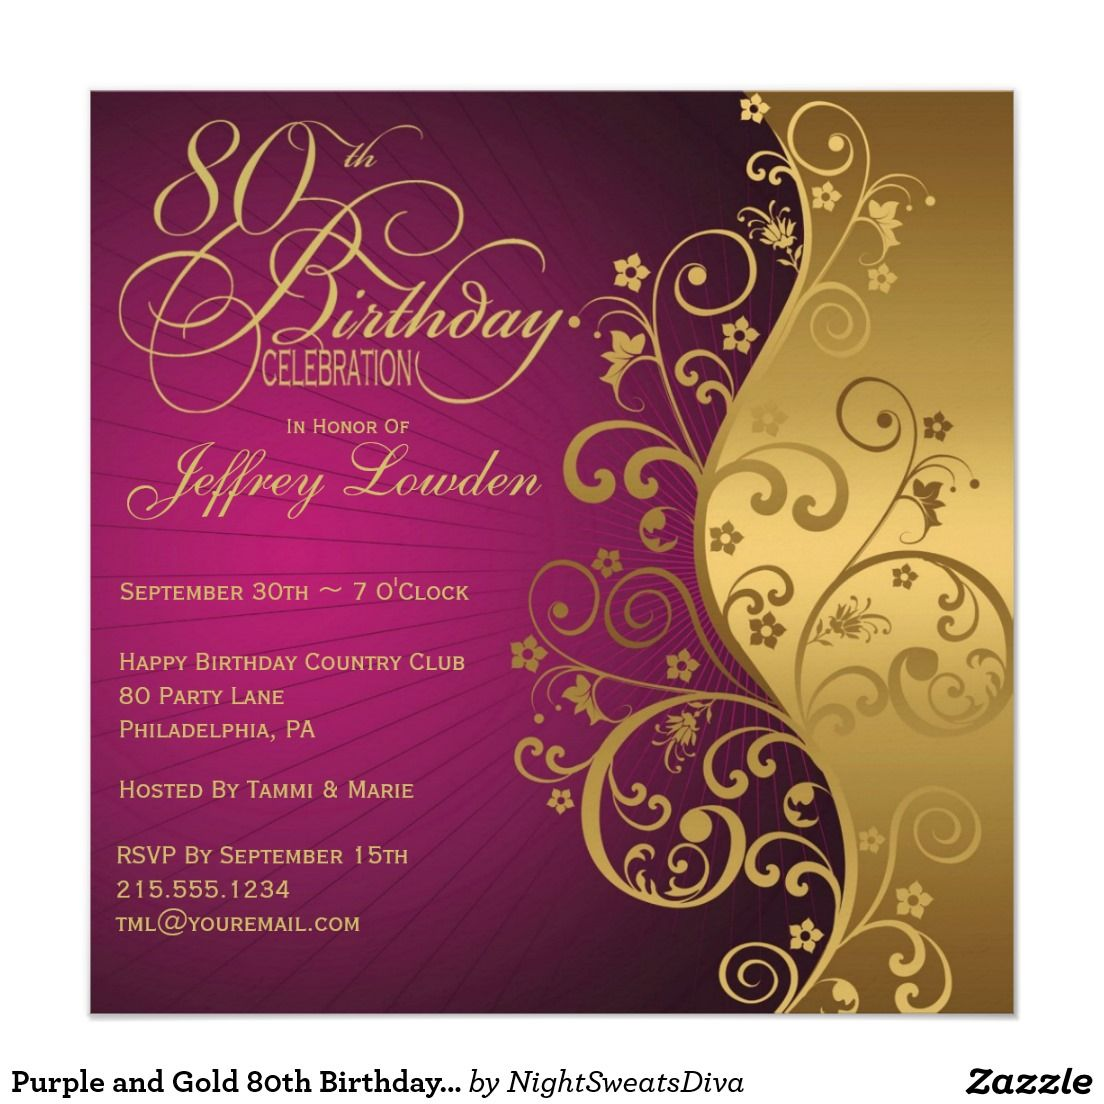 Purple and Gold 80th Birthday Party Invitation … | Pinteres…